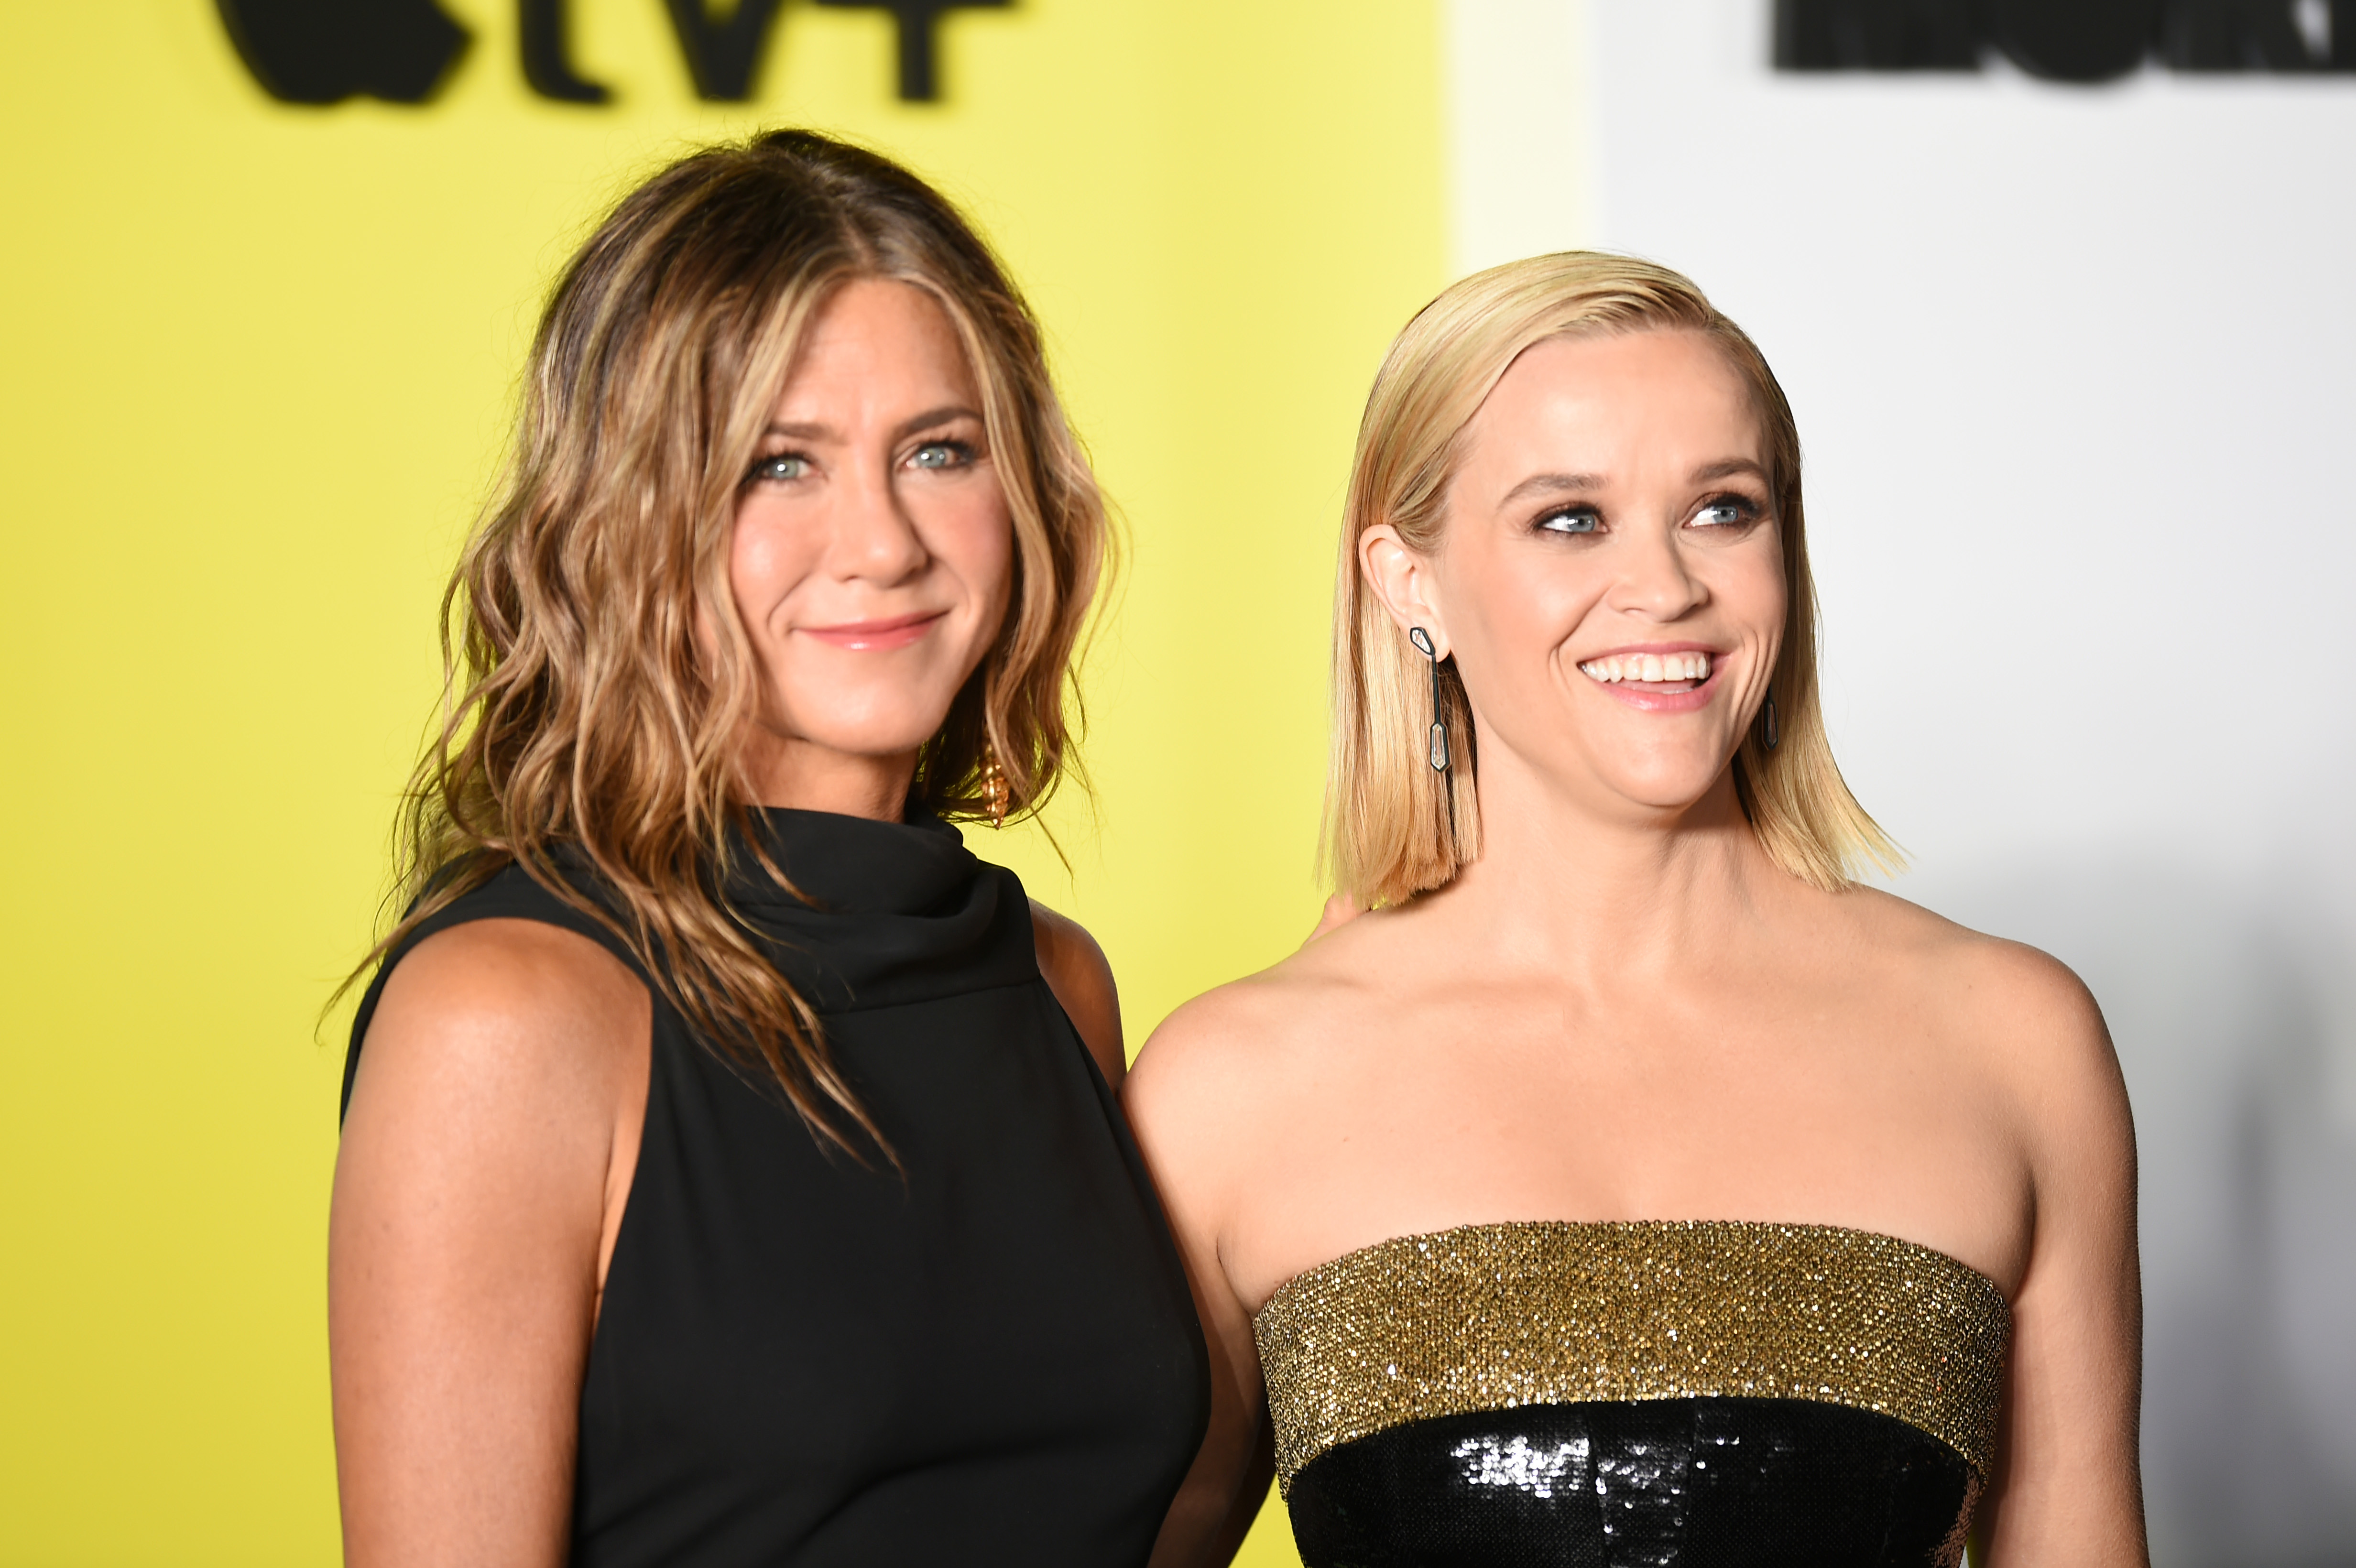 Jennifer Aniston and Reese Witherspoon'The Morning Show' TV show premiere, Arrivals, Lincoln Center's David Geffen Hall, New York, USA - 28 Oct 2019